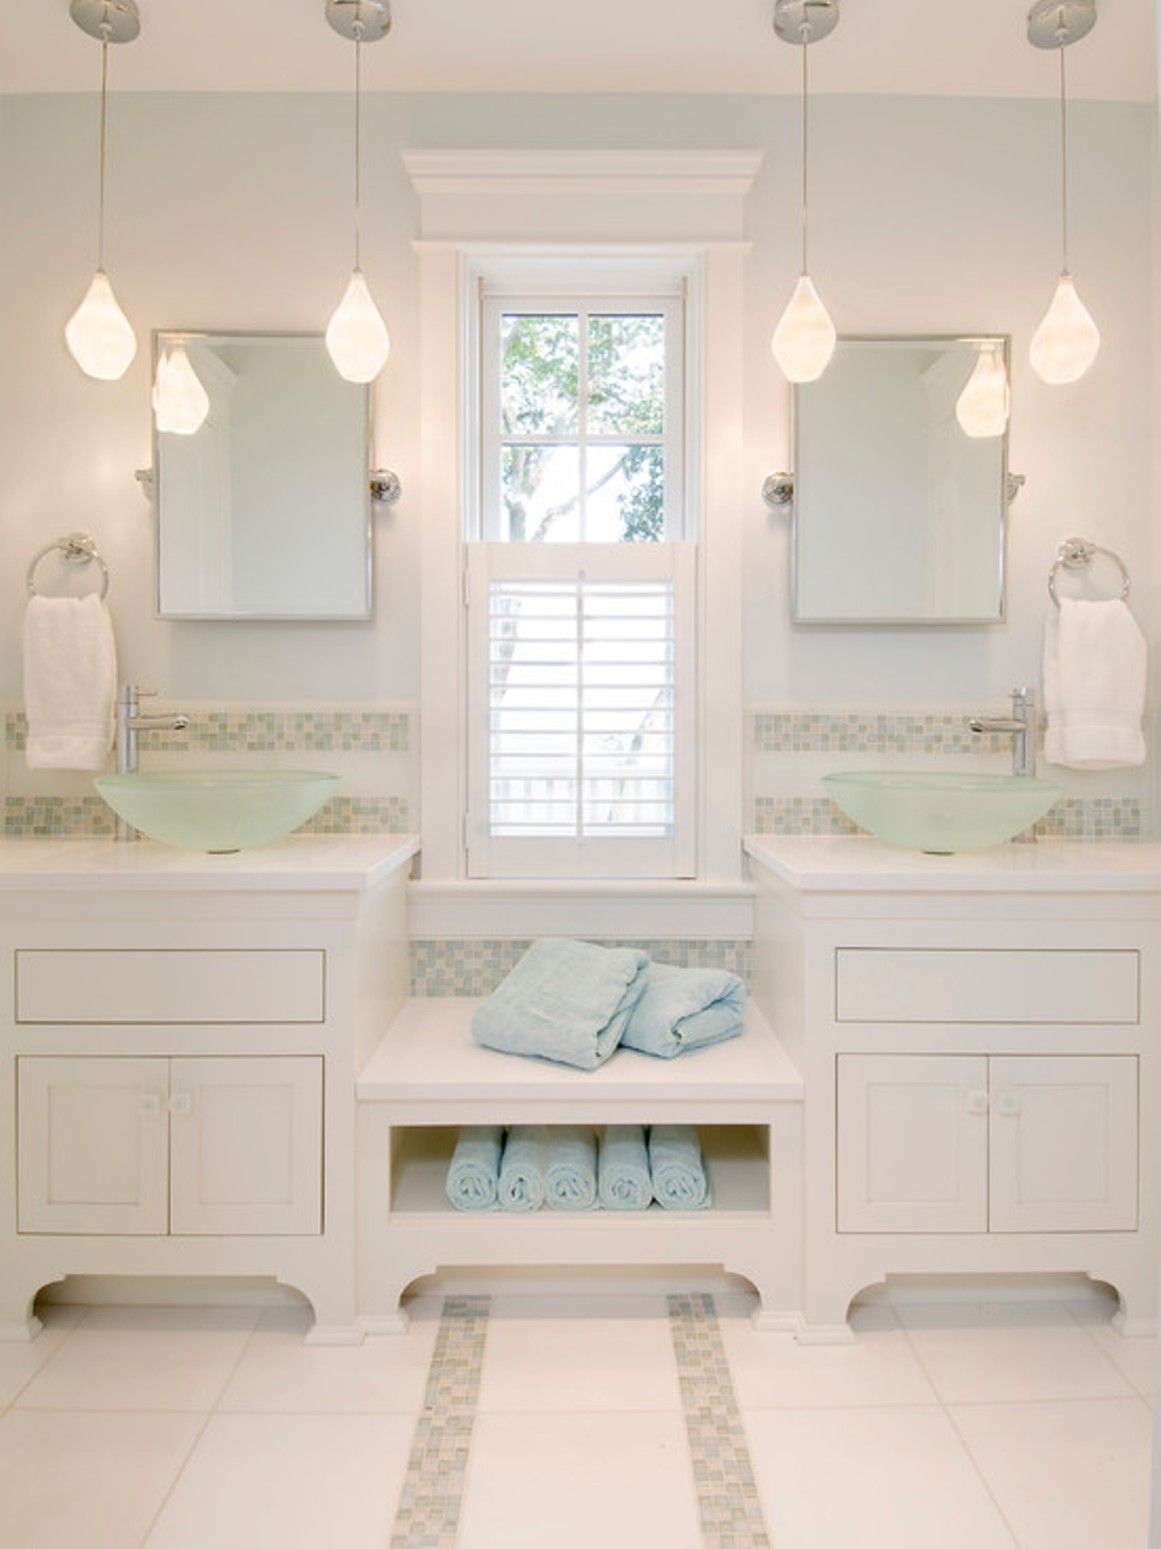 Bathroom Vanity Lights Near Me best pendant lighting bathroom vanity for awesome nuance : white